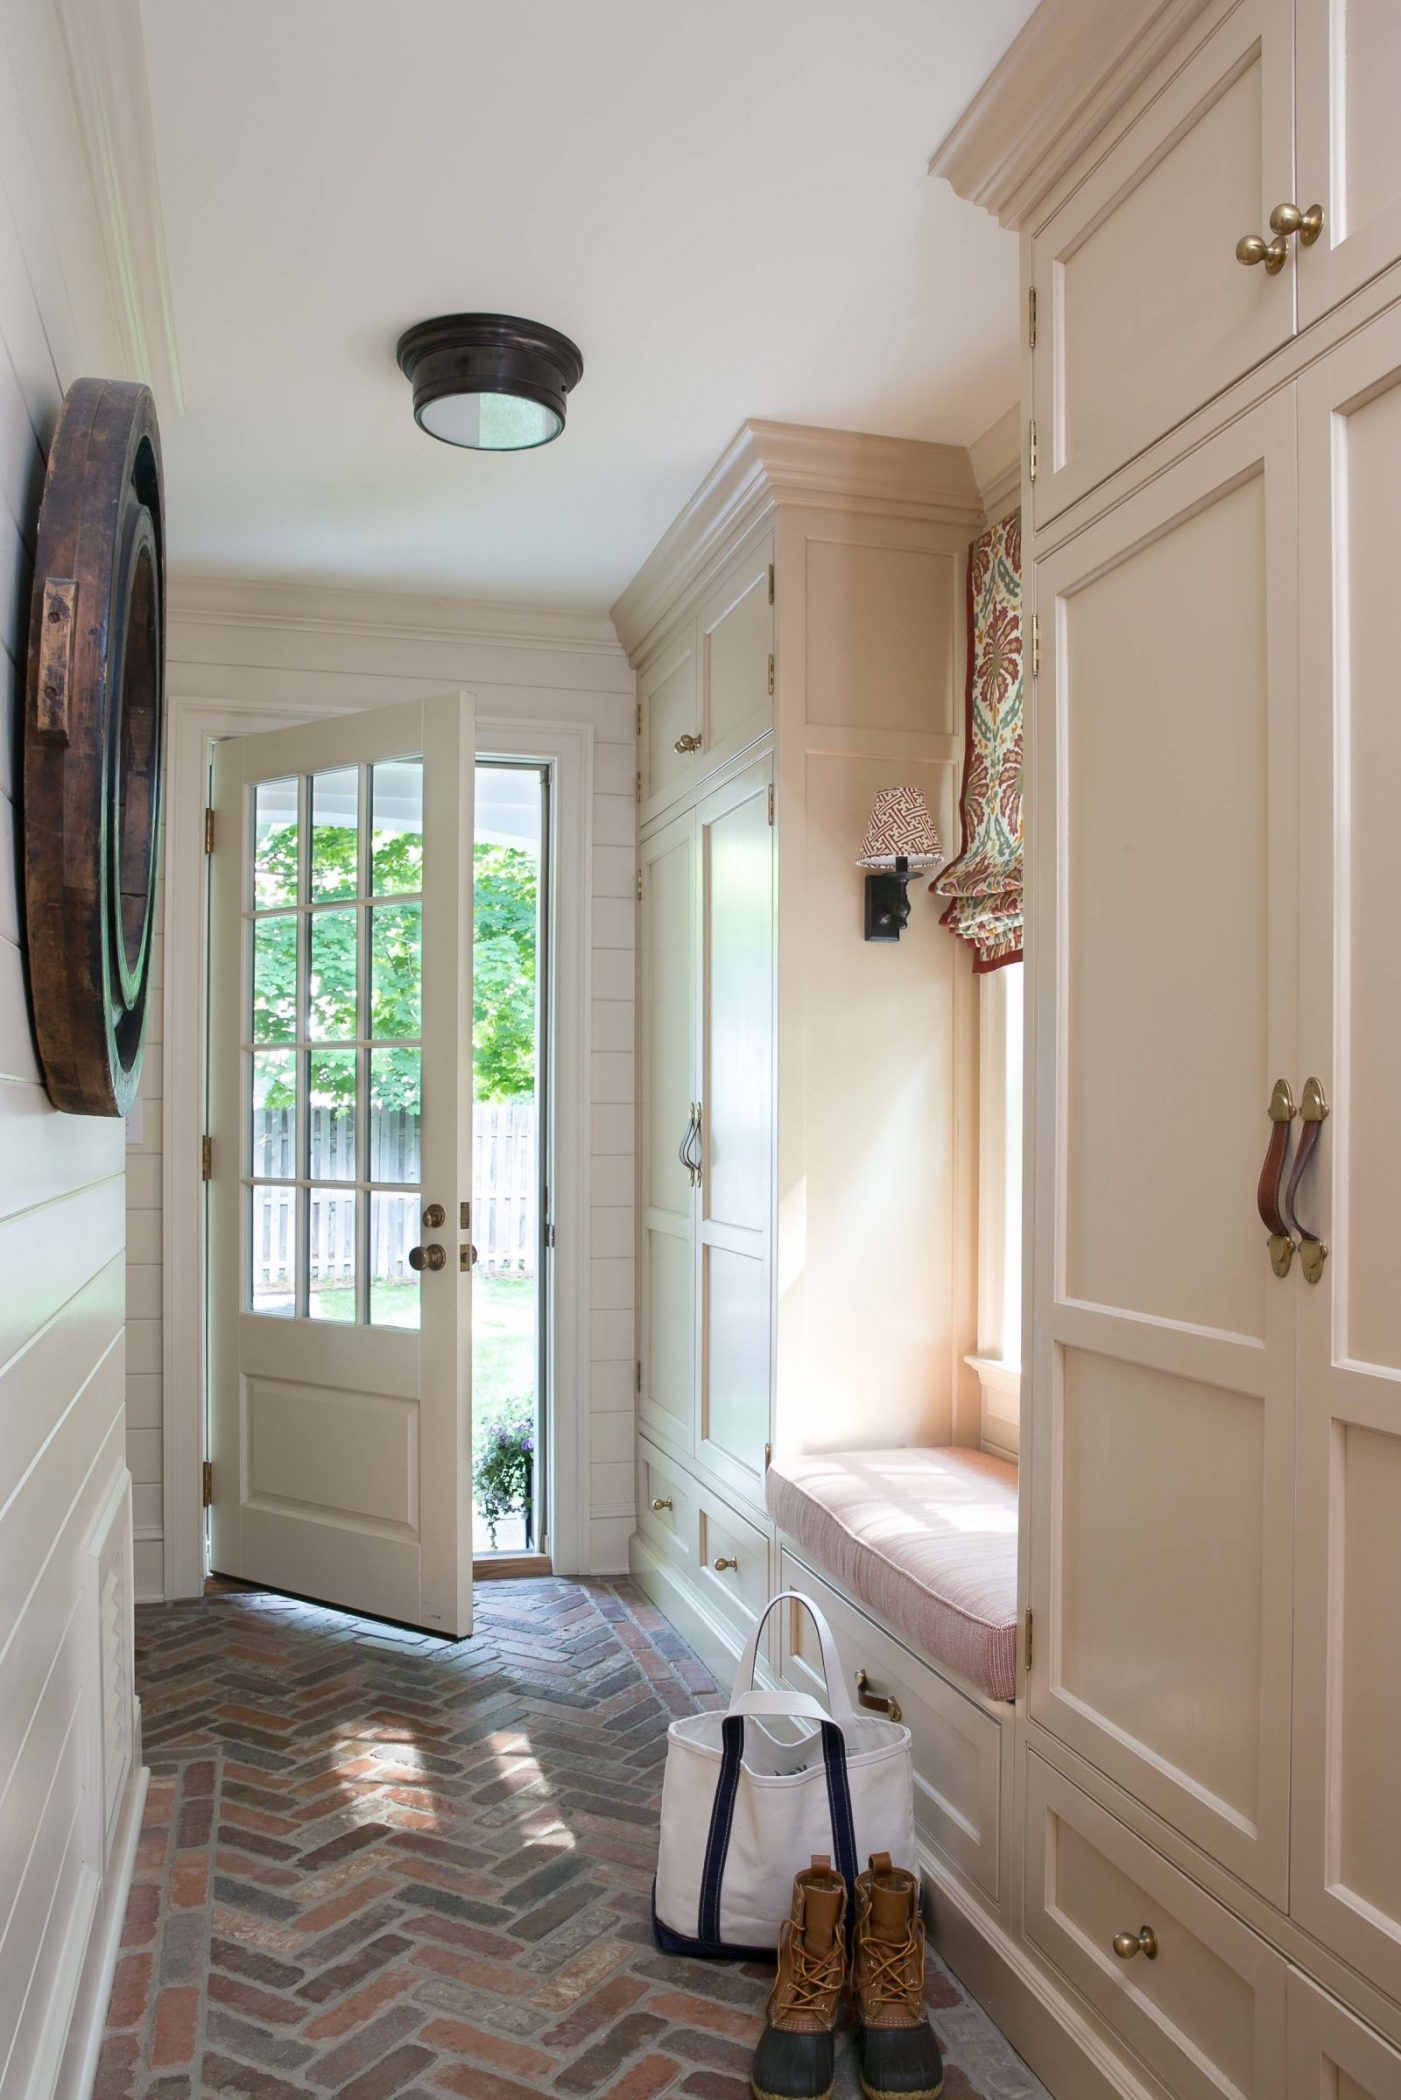 Entry Room Design: Mudroom Ideas: How To Design A Mudroom For Different